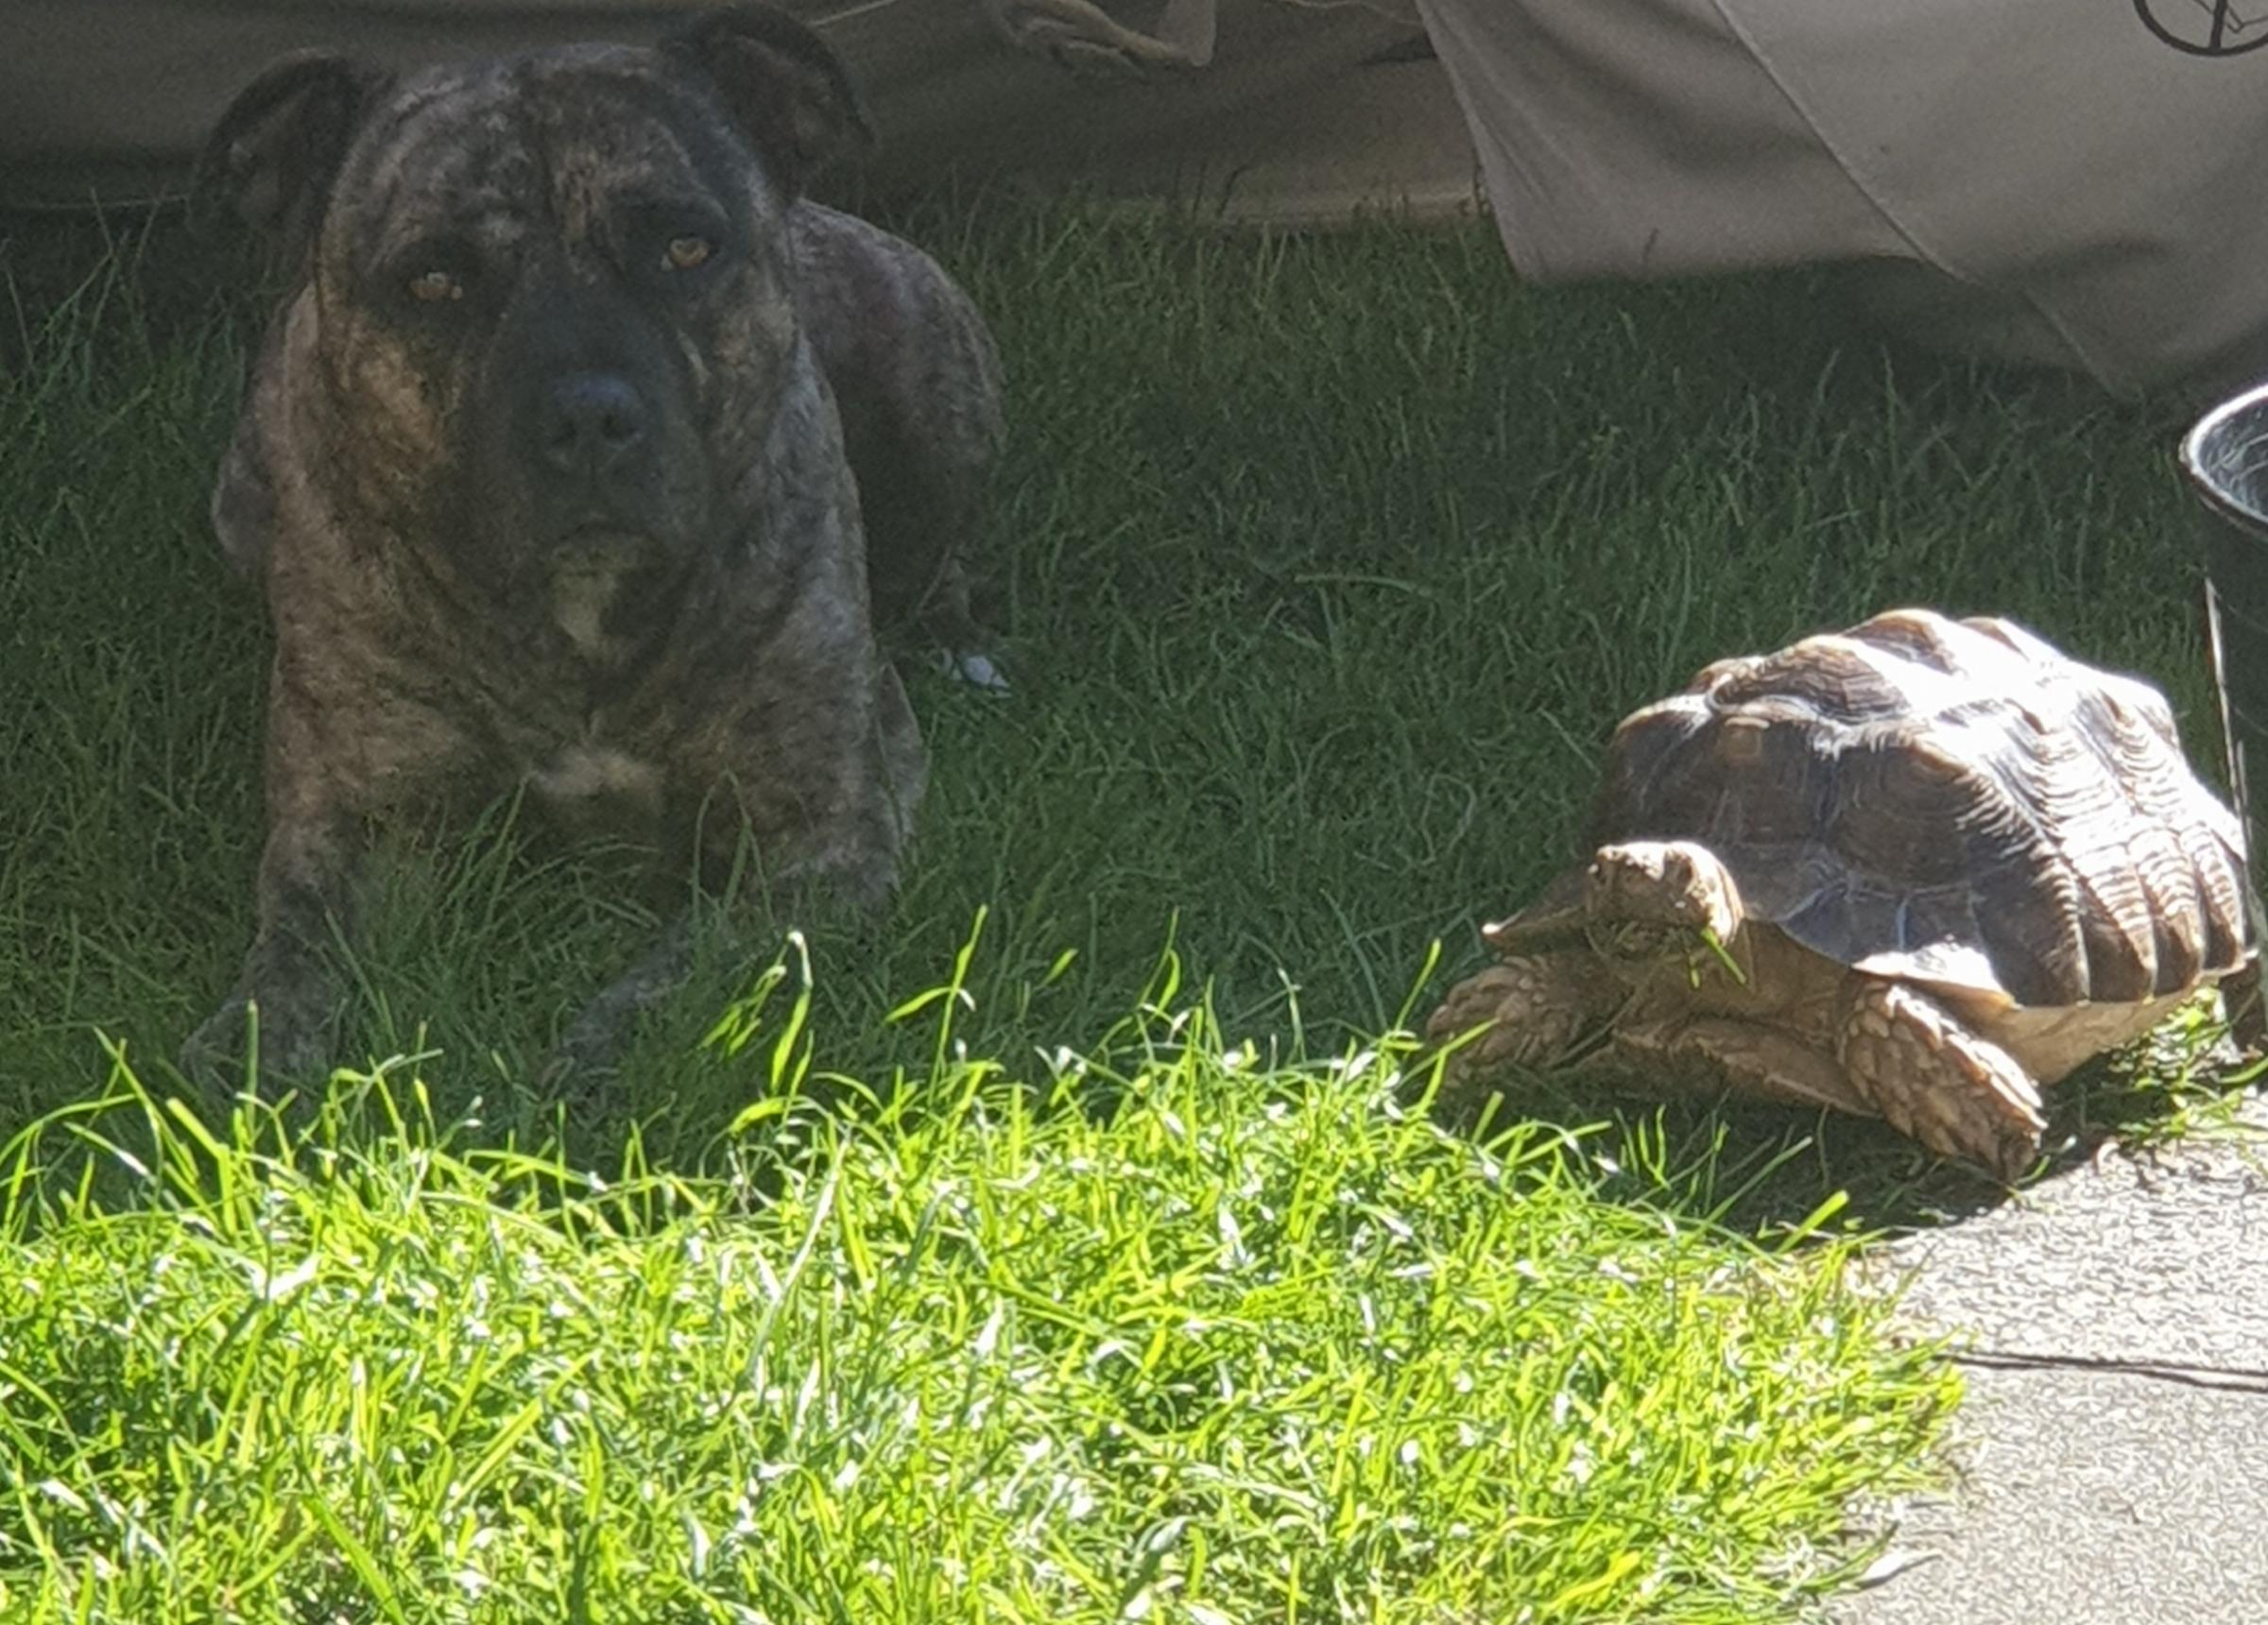 The unusual friendship between this dog and tortoise in Orford